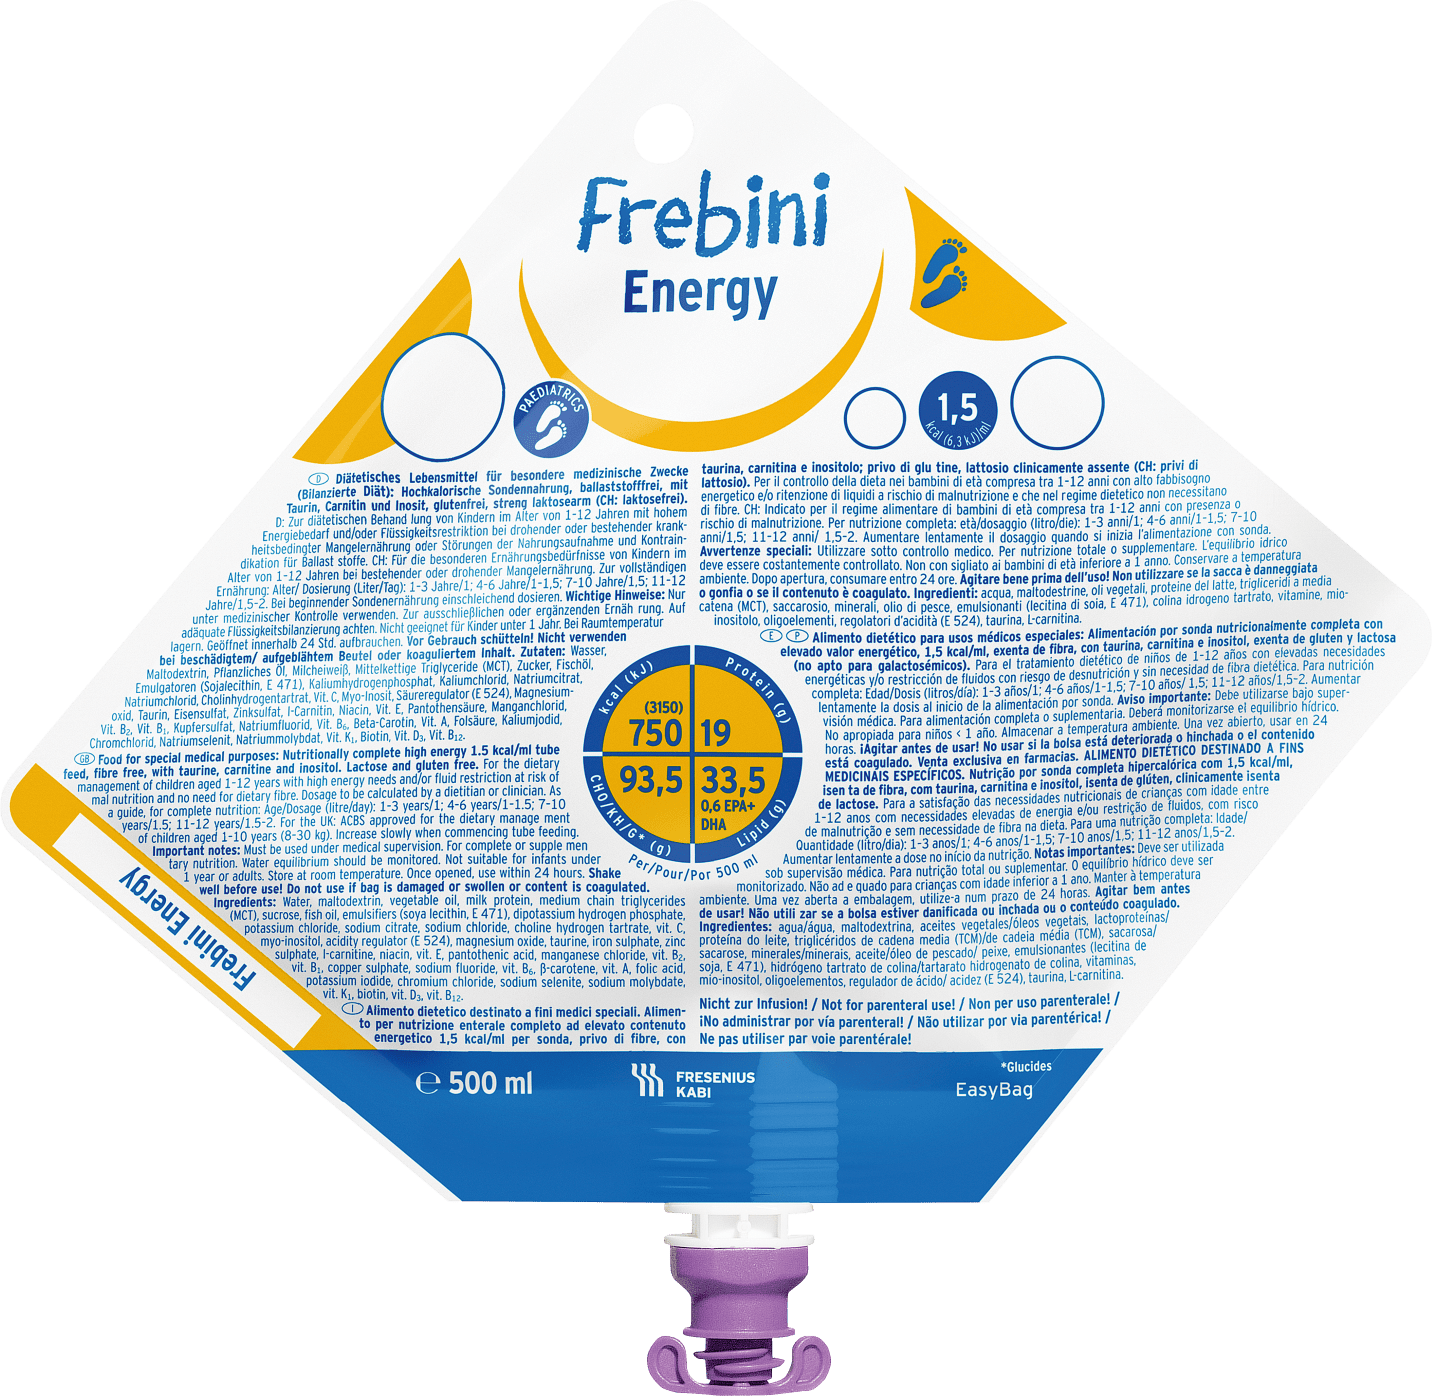 Frebini_Energy_Int_500ml-2